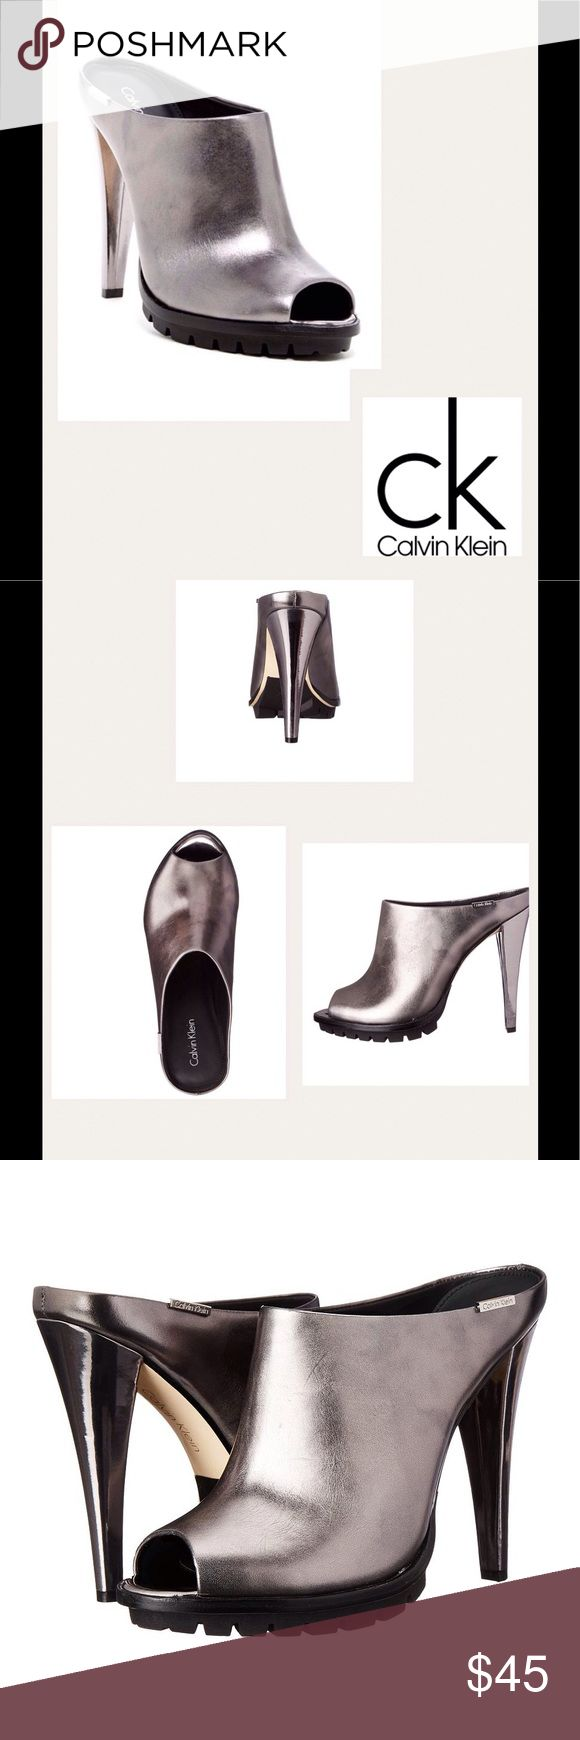 """COMING SOON - CK Lina Antique Leather Mule NEW Calvin Klein leather upper, peep toe, rubber sole, the Calvin Klein slip-ons will dress up your look with effortless style. Sizing: True to size. Hardware logo accent.  Approx. 4.85"""" heel. Calvin Klein Shoes Mules & Clogs"""